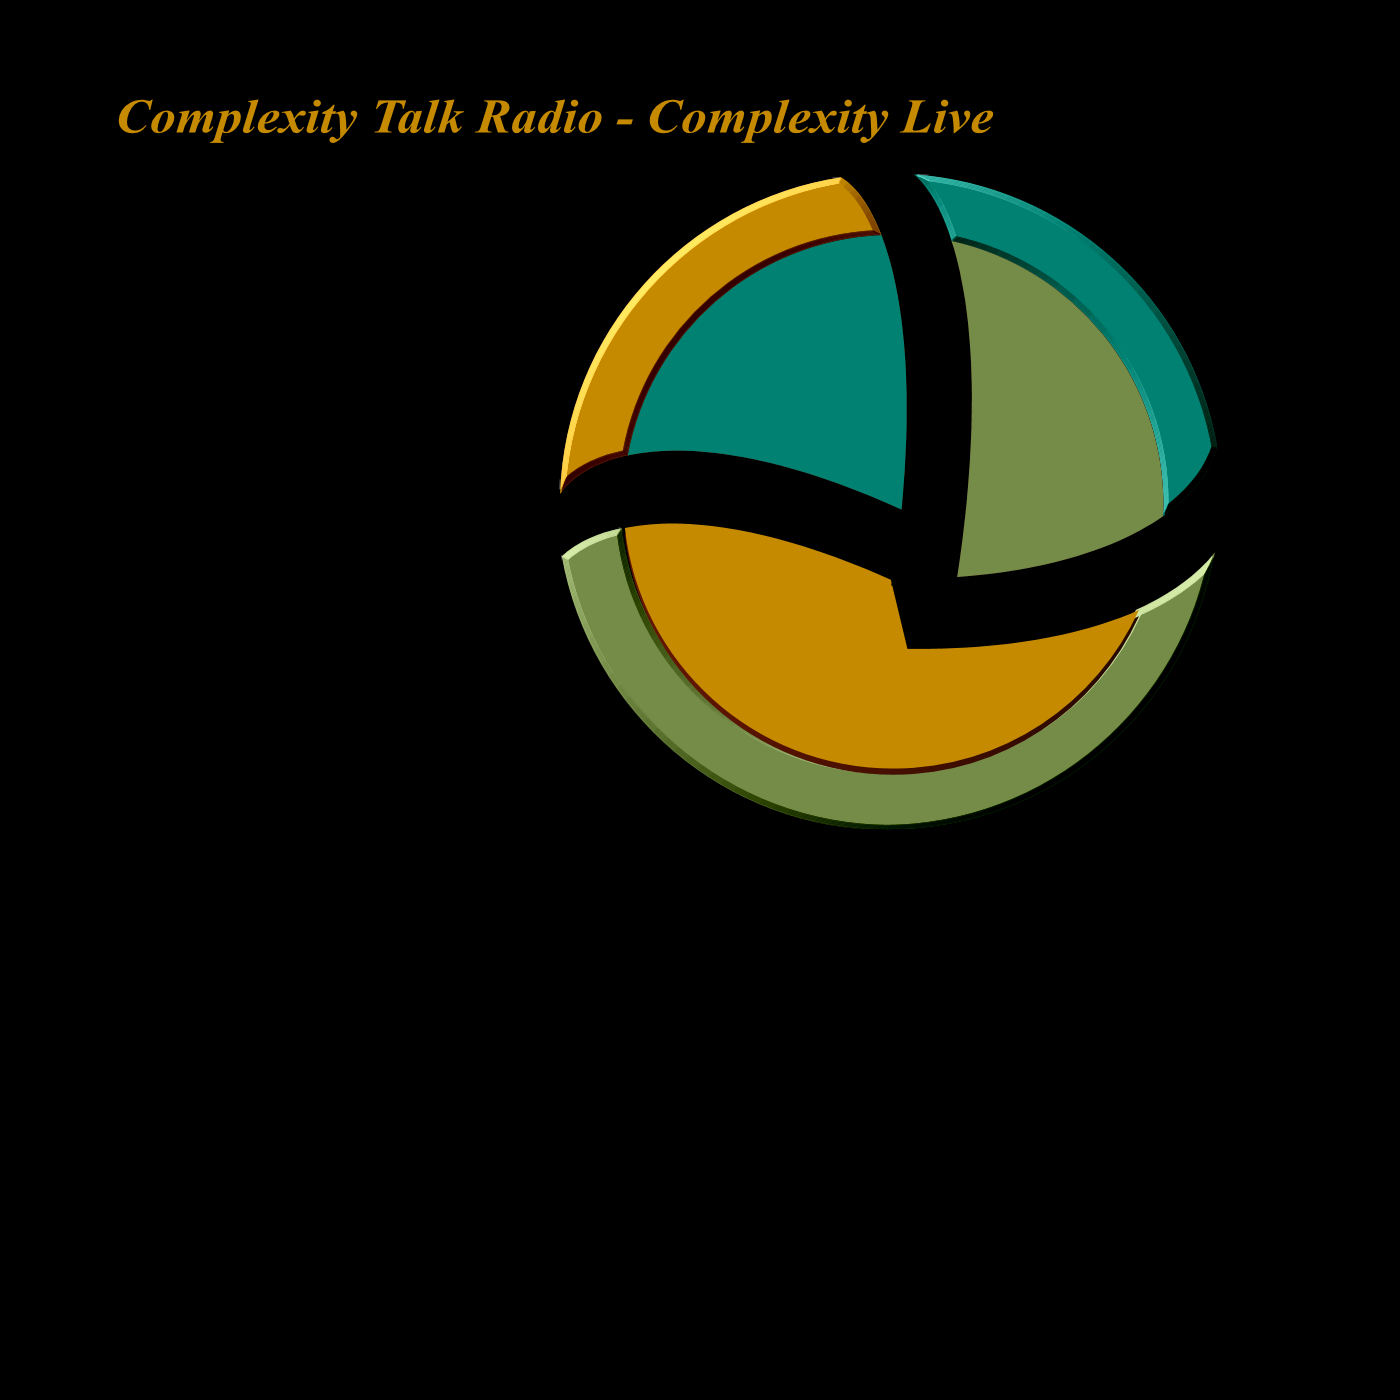 Complexity Talk Radio